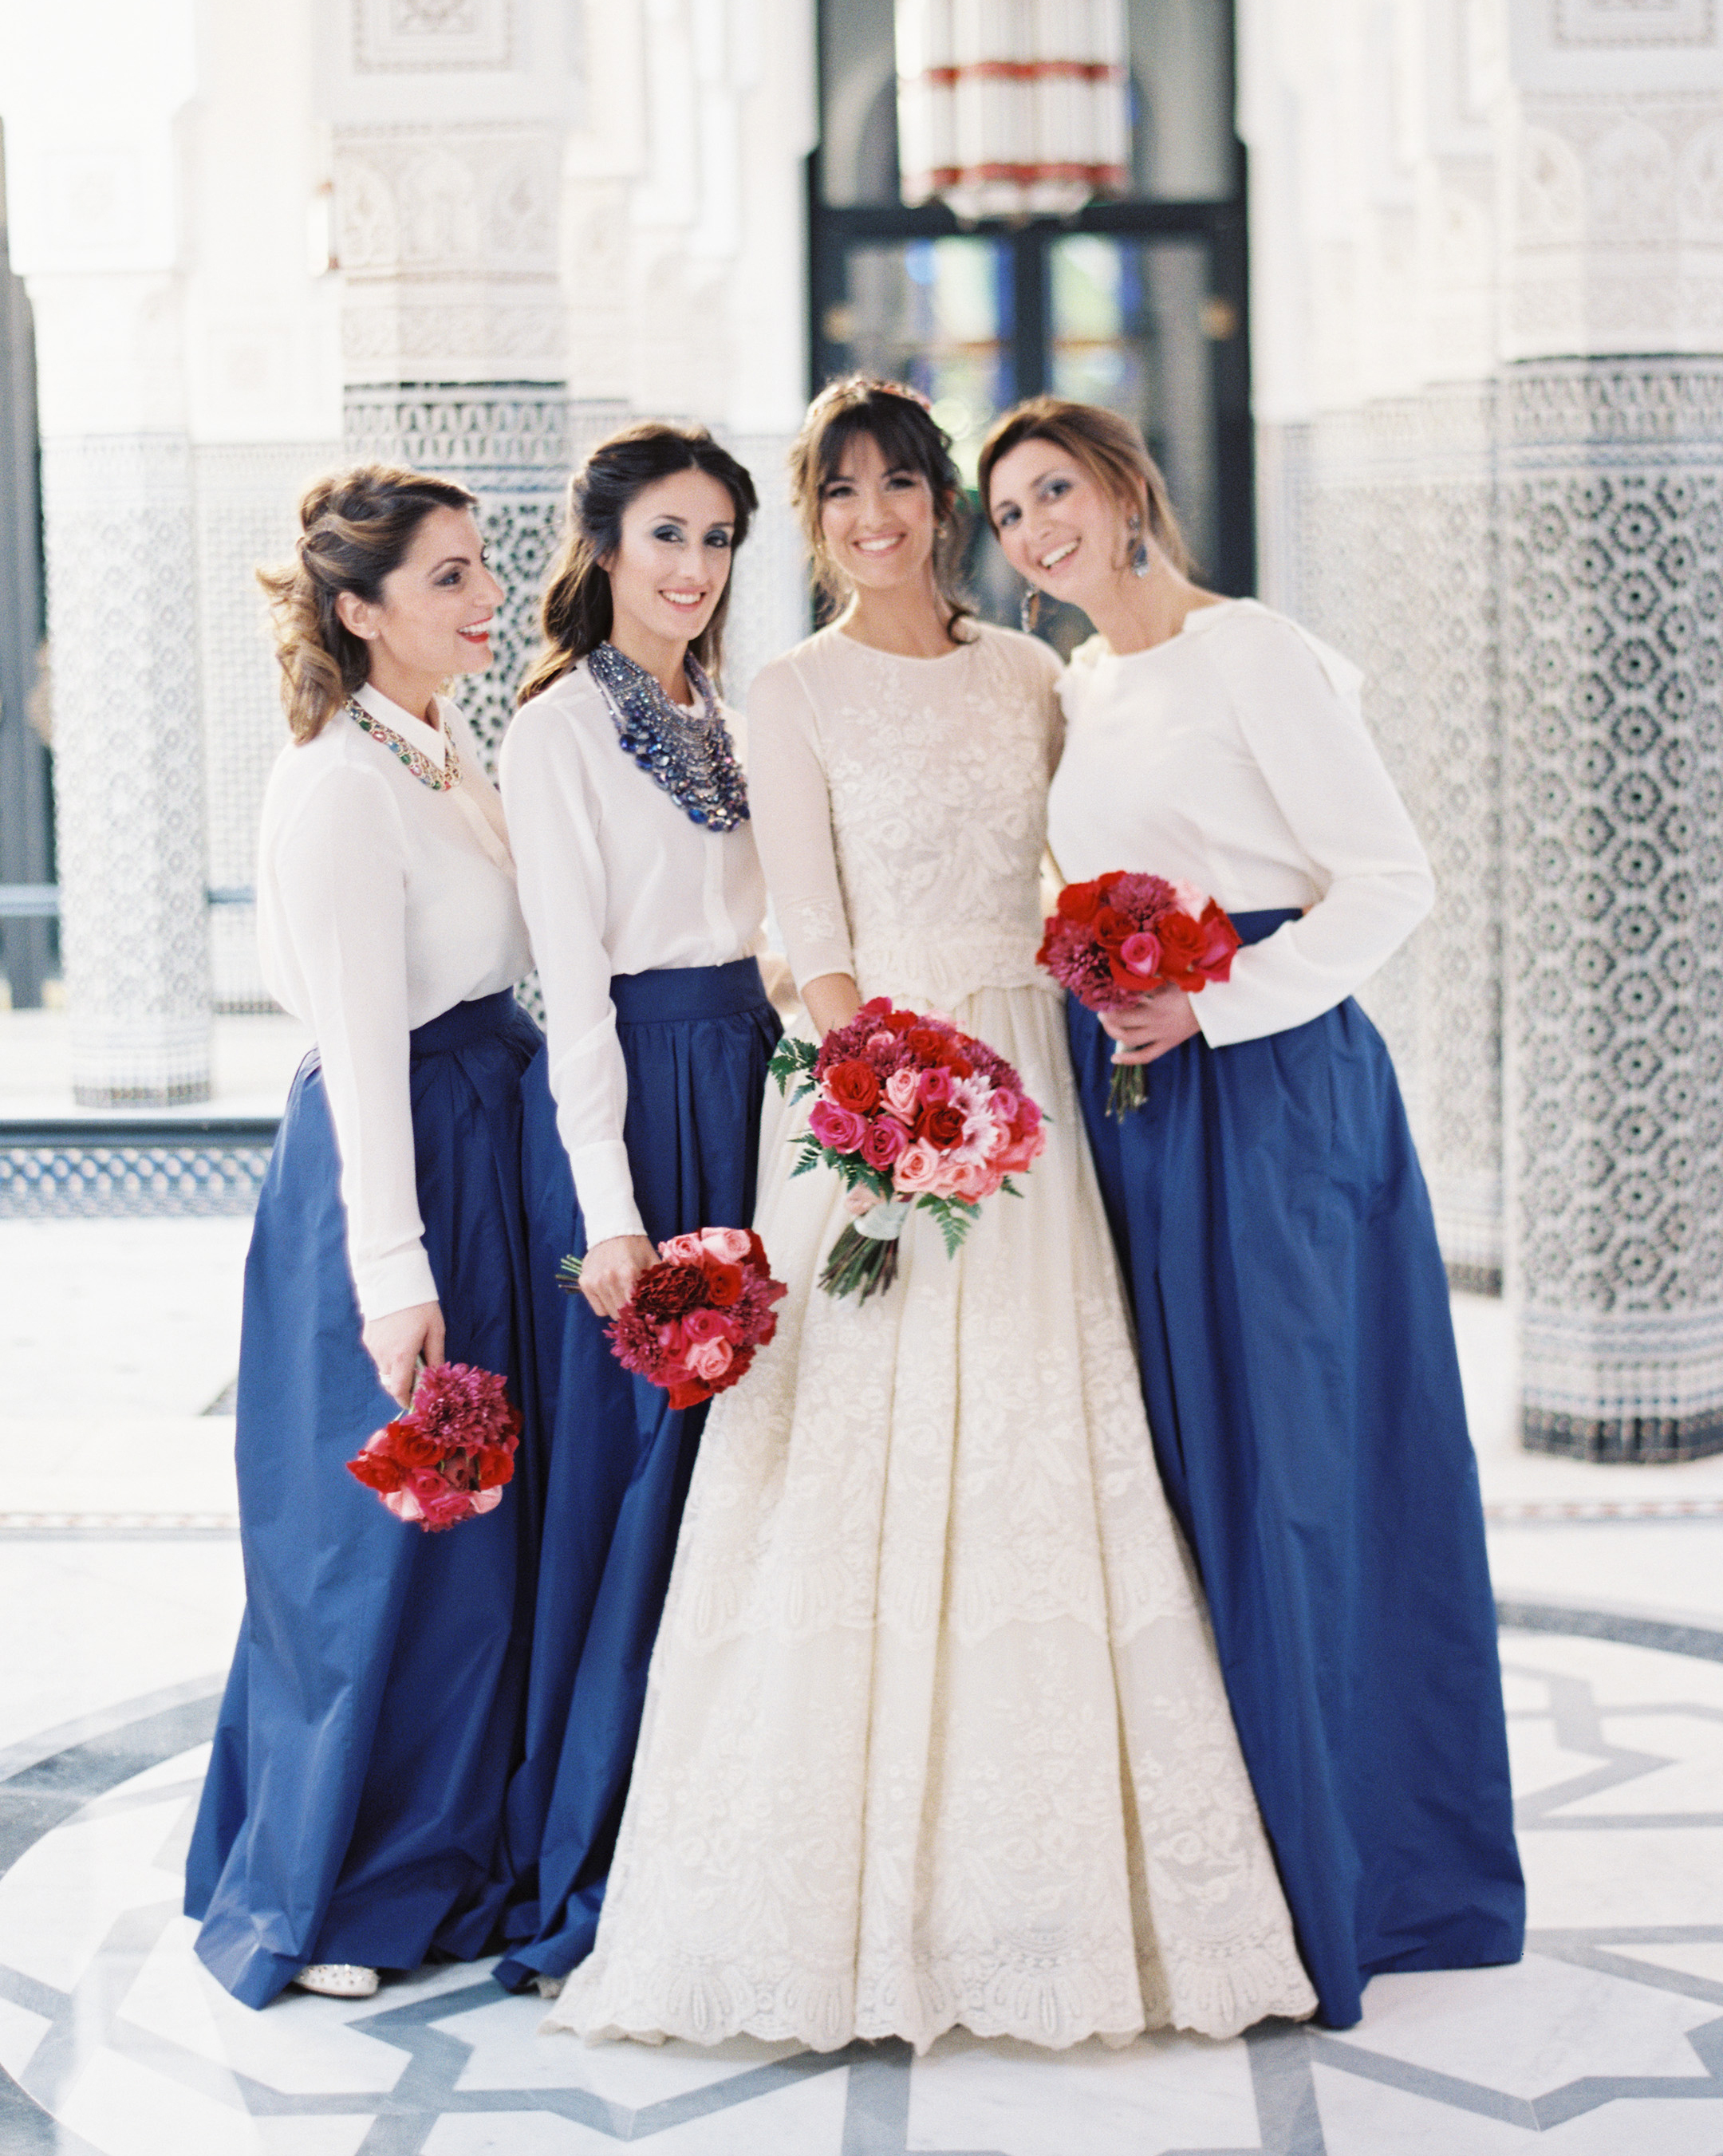 federica-tommaso-wedding-bridesmaids-050-s112330-1015.jpg